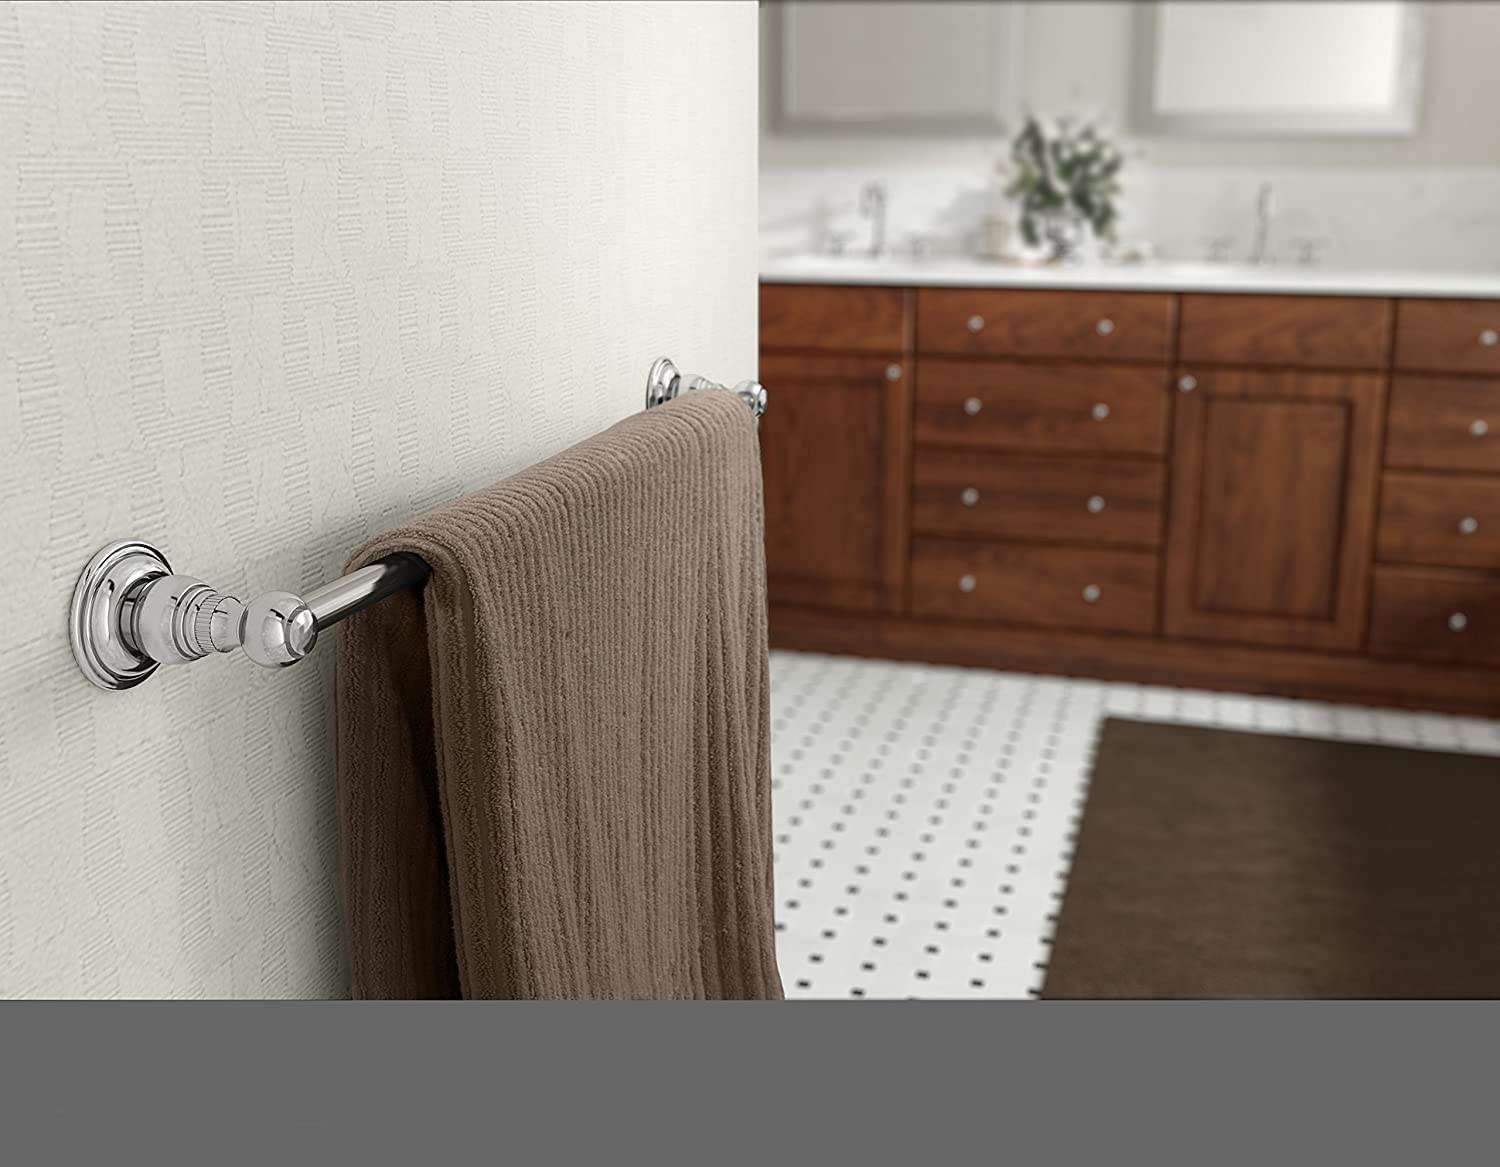 Symmons 443TB-18 Carrington 18 in Wall-Mounted Towel Bar in Polished Chrome